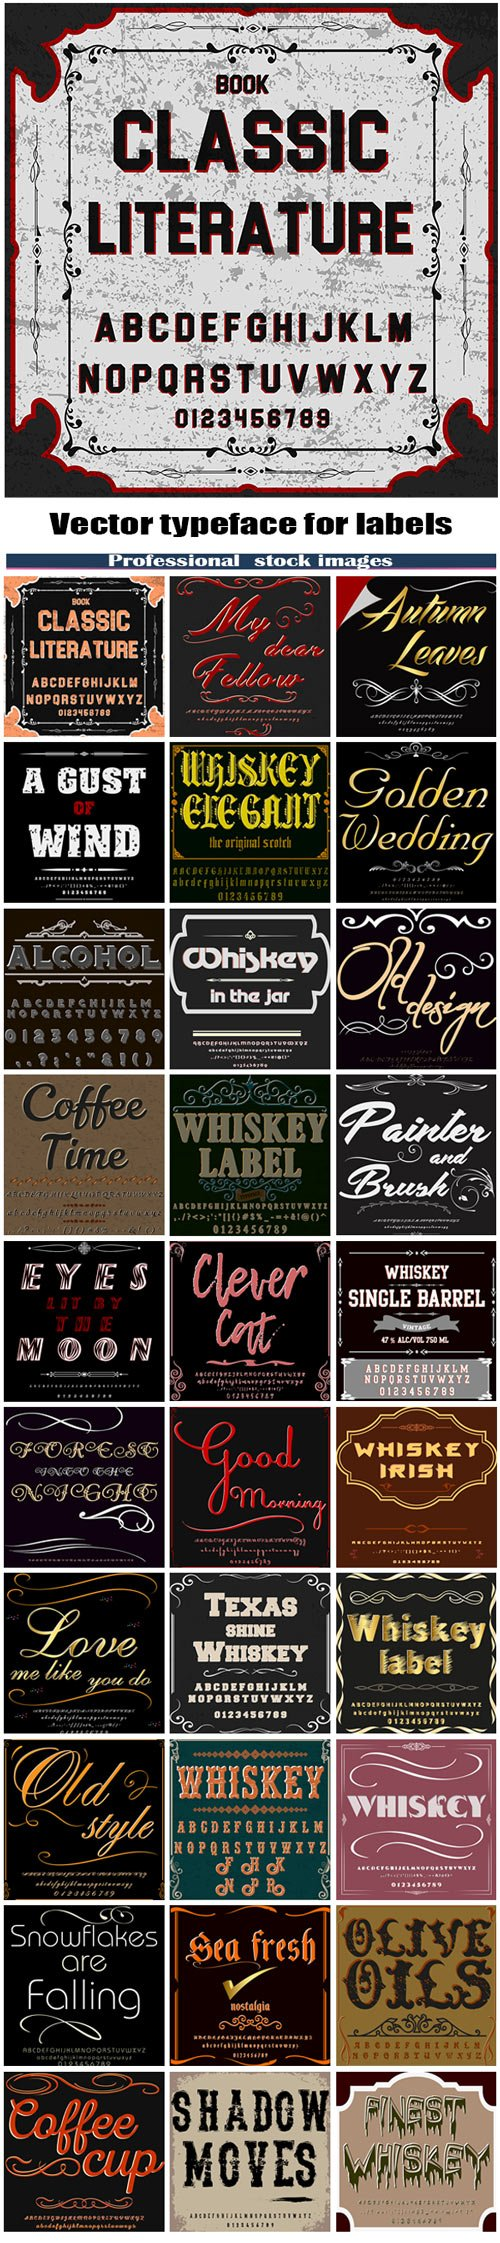 Vector typeface for labels and any type design